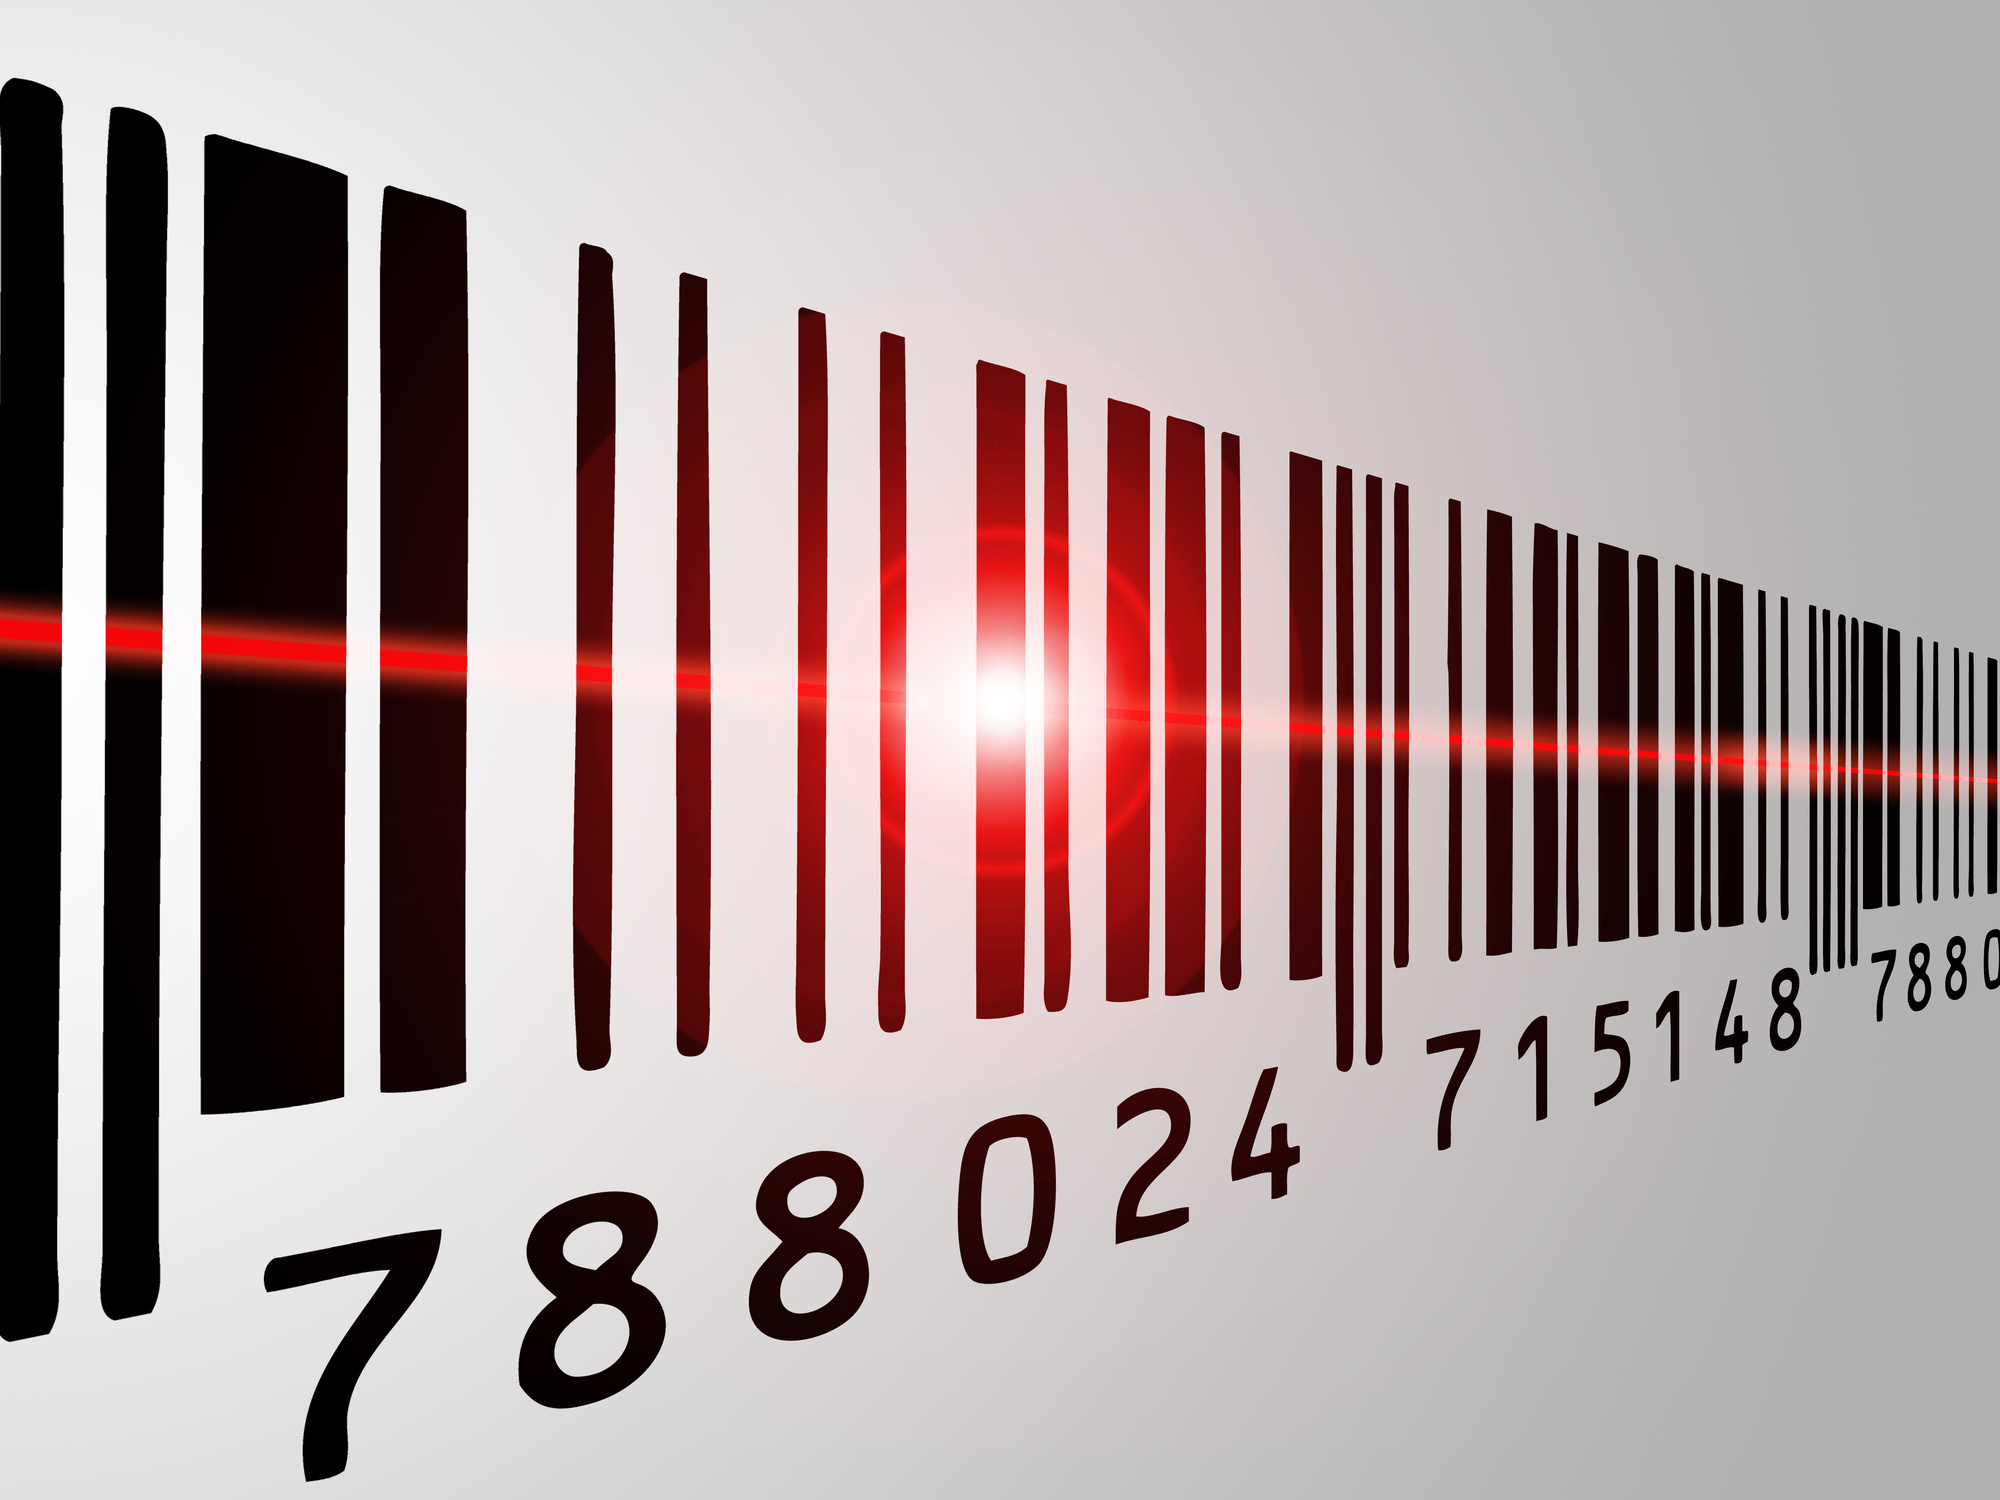 the barcode